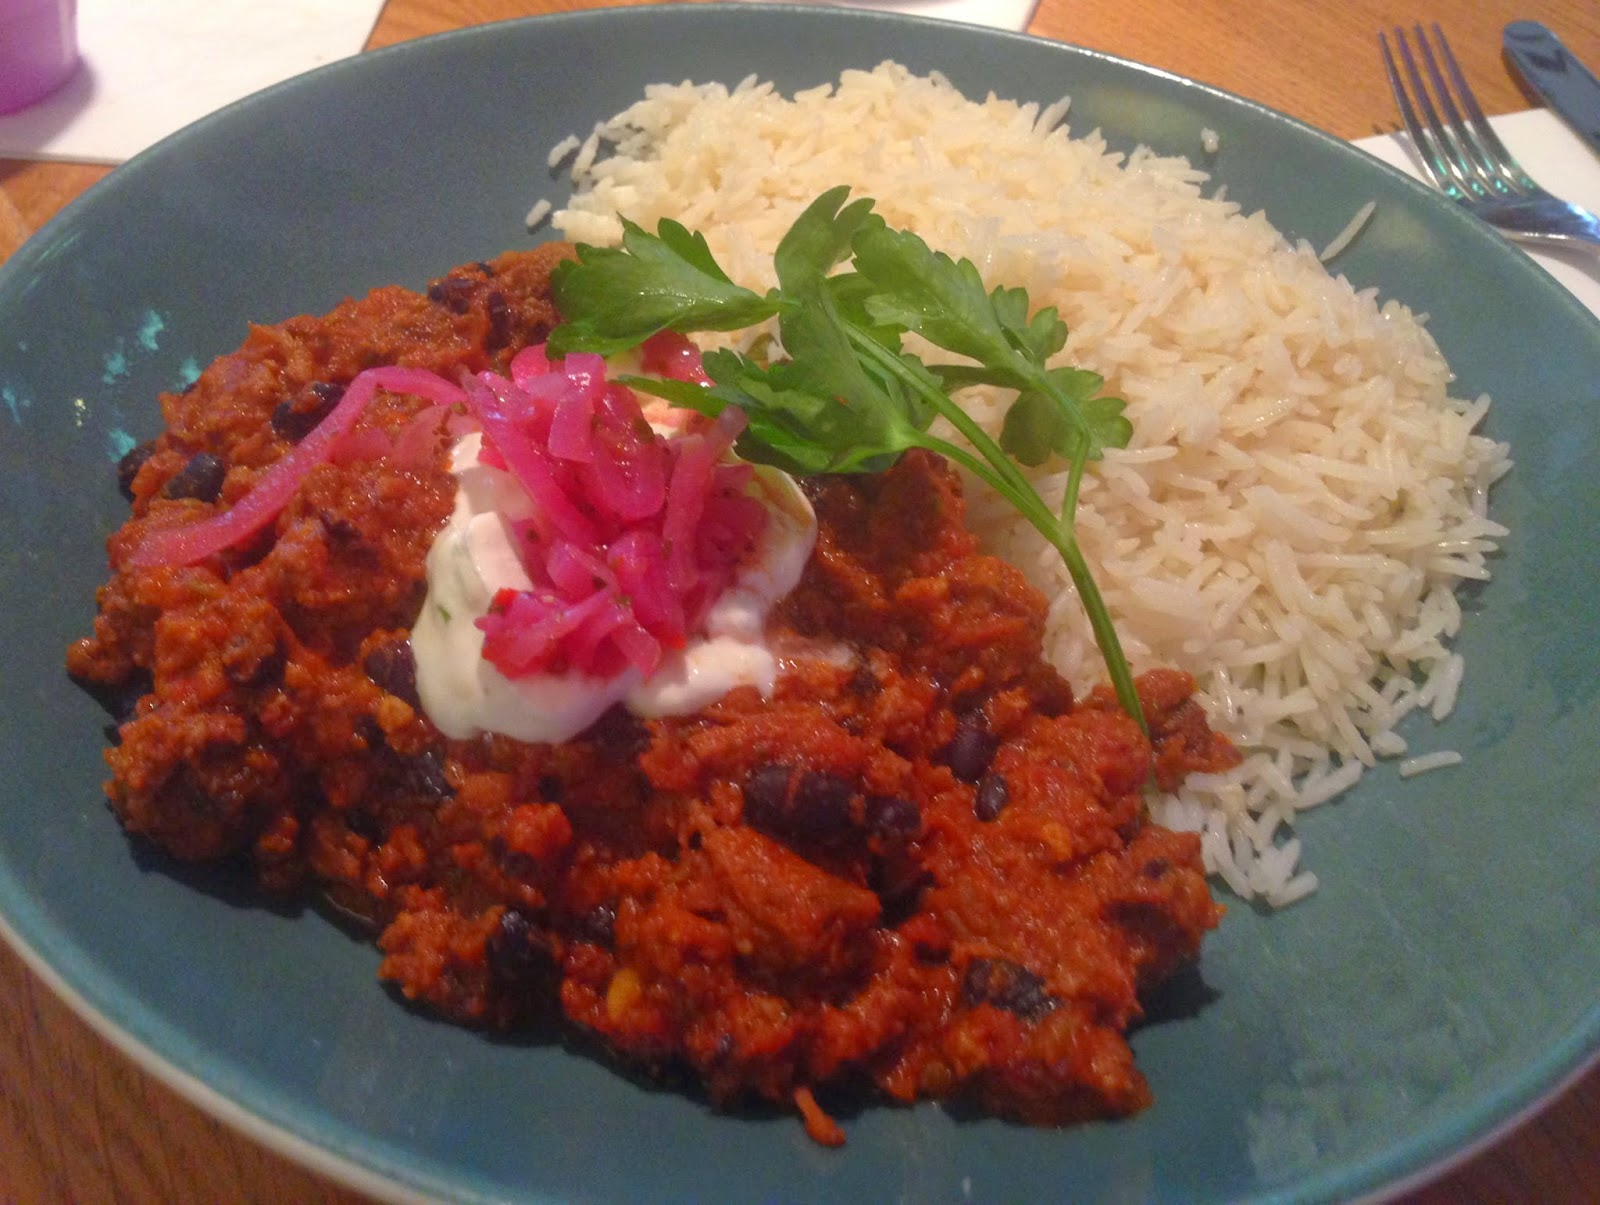 Chilli Con Carne from the Lunch Menu at Las Iguanas